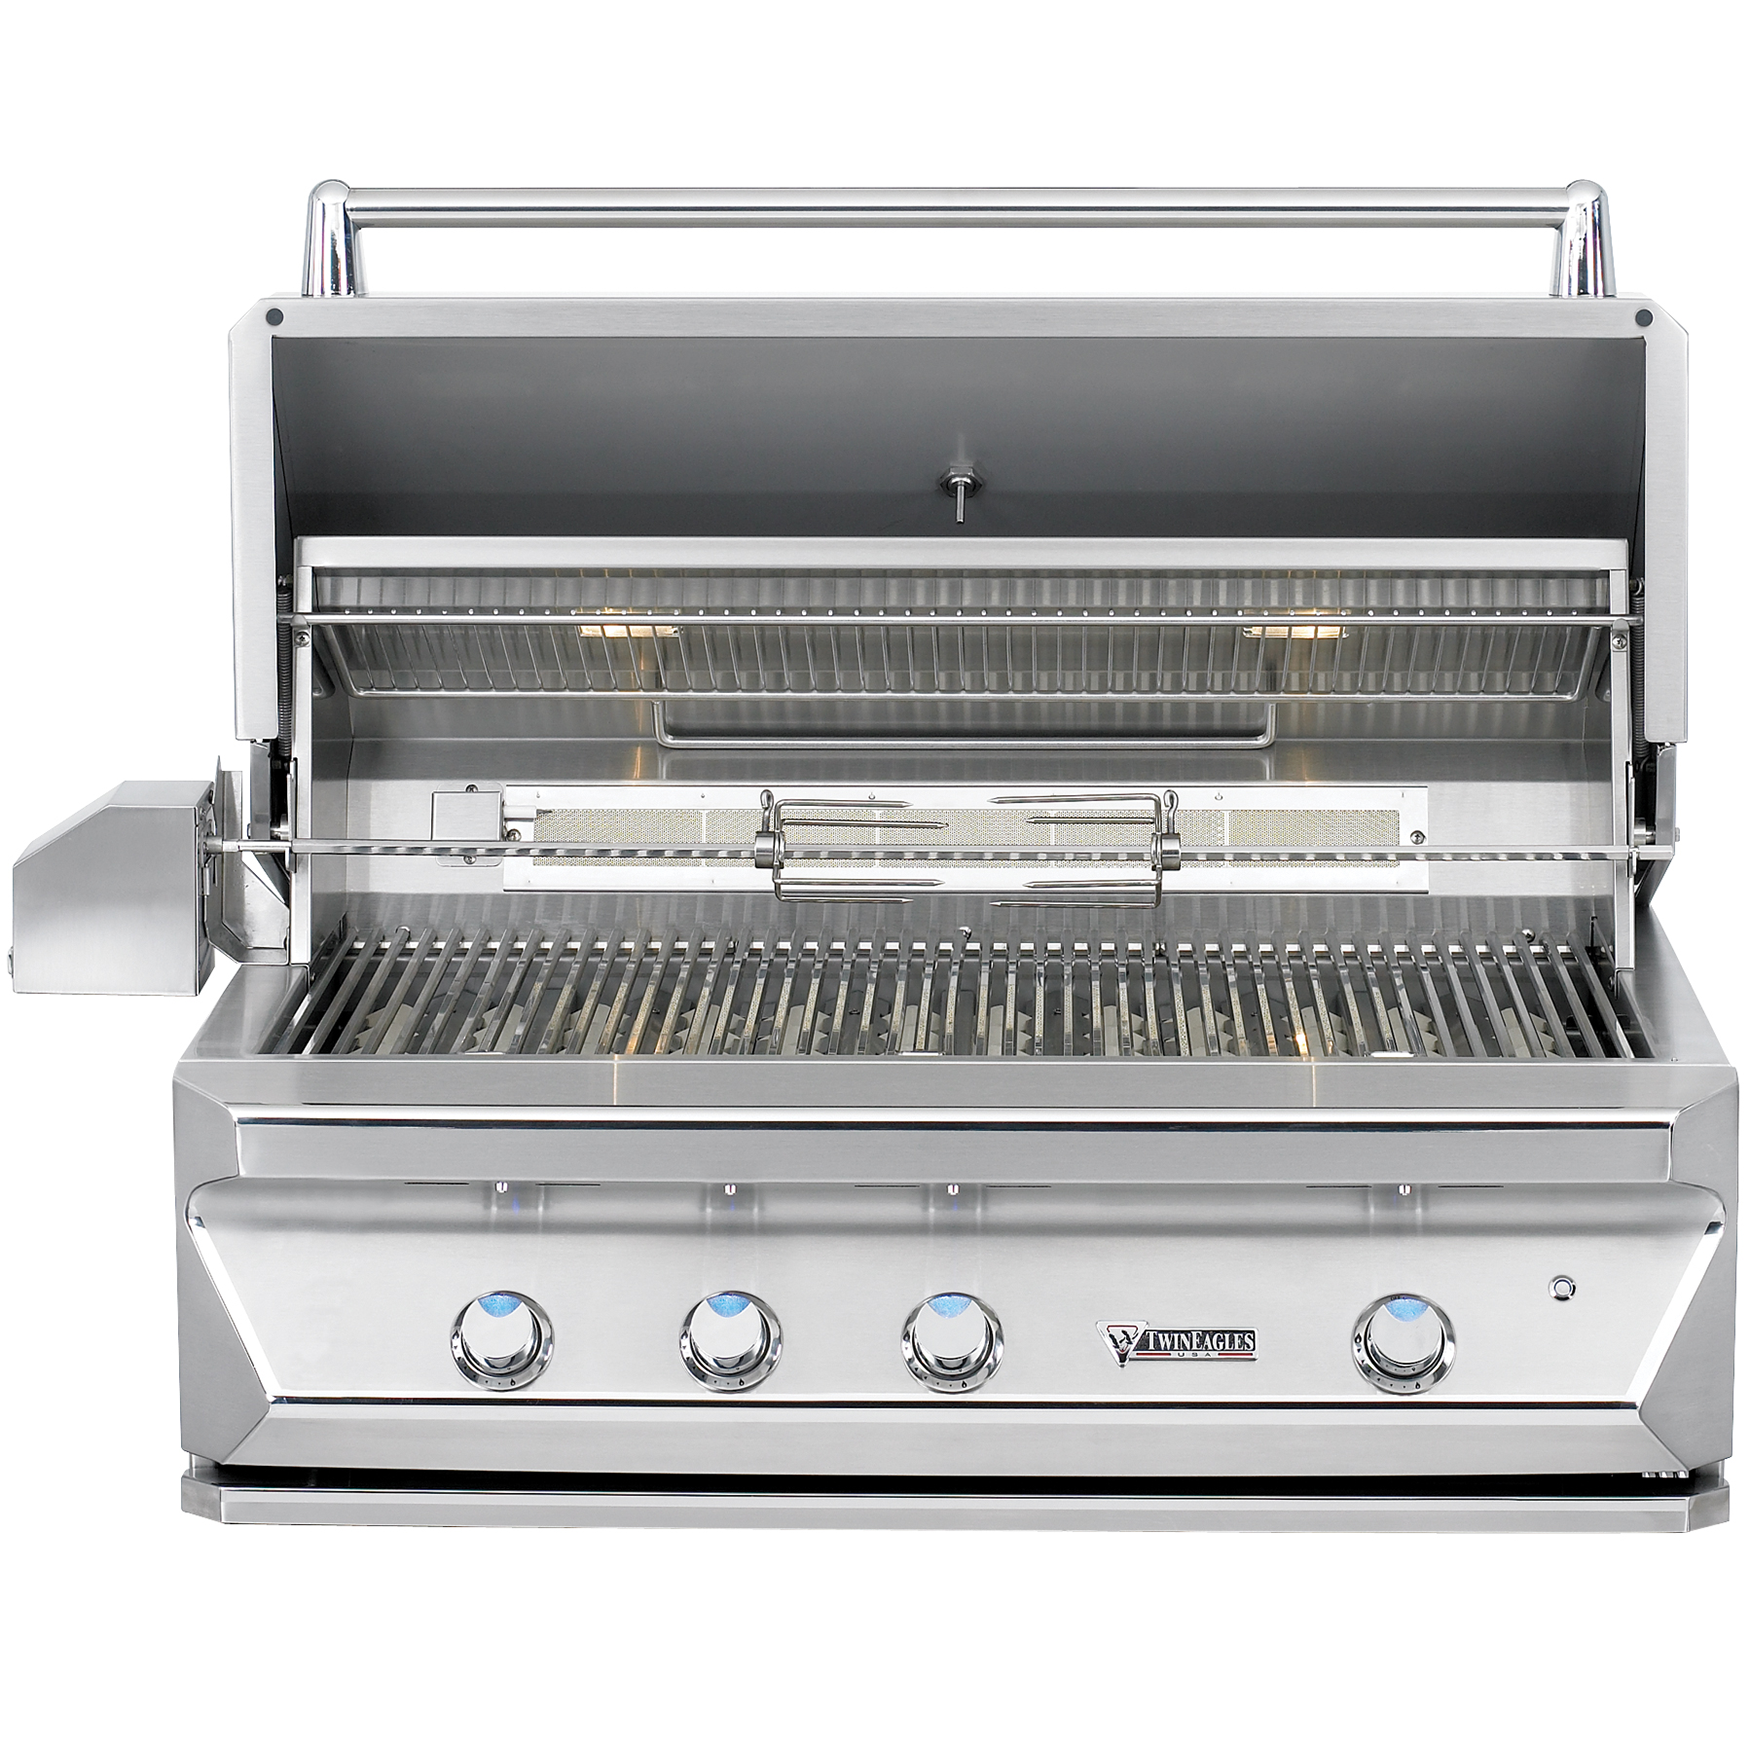 "42"" Twin Eagles Built-In Gas Grill w/ Infrared Rotisserie & Sear Zone, Liquid Propane"